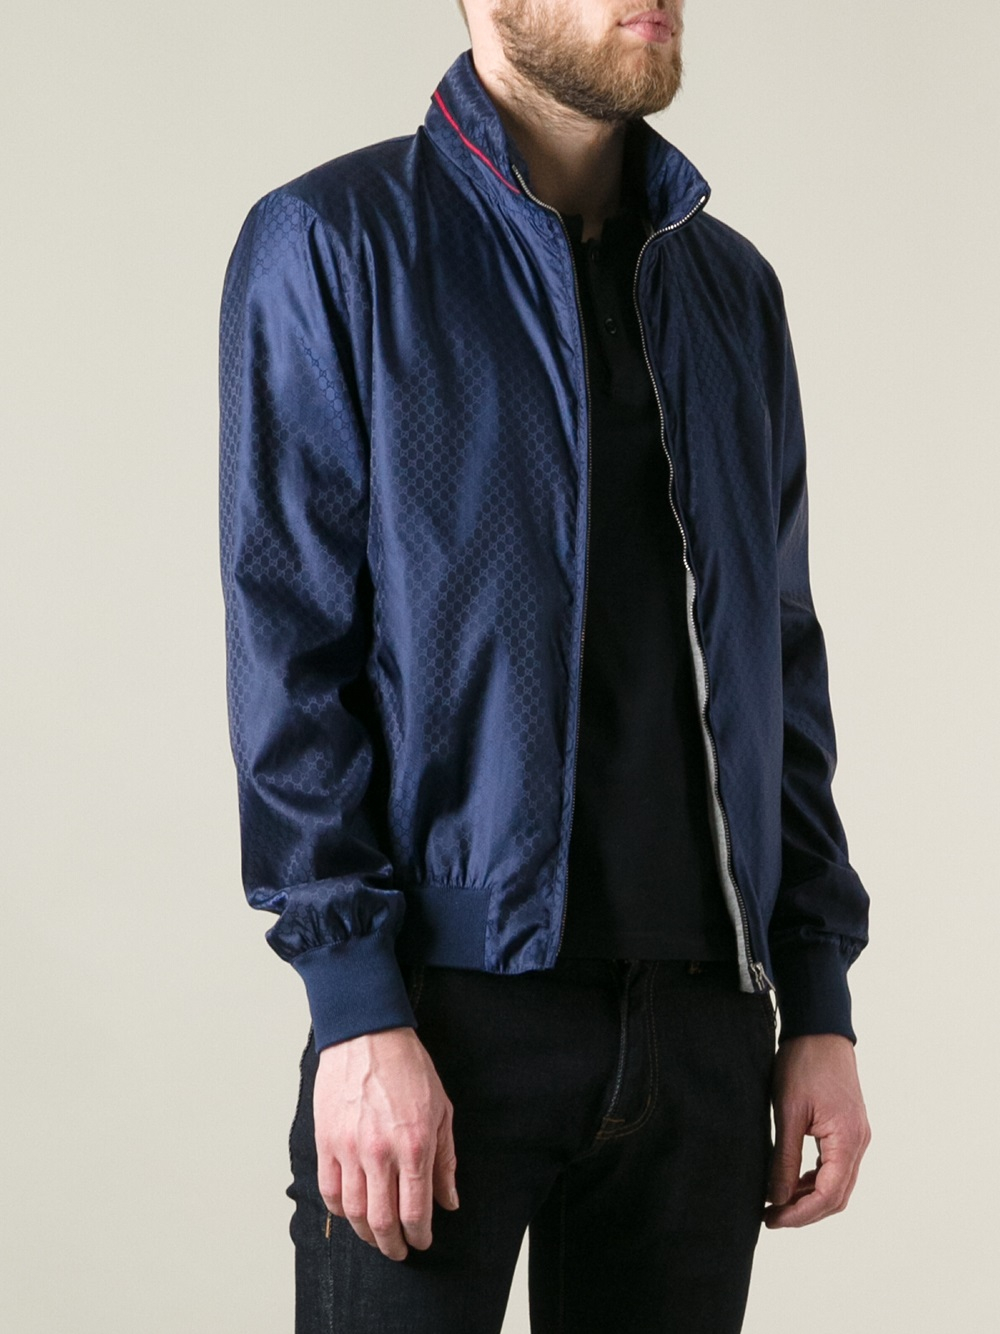 Gucci Printed Bomber Jacket in Blue for Men | Lyst